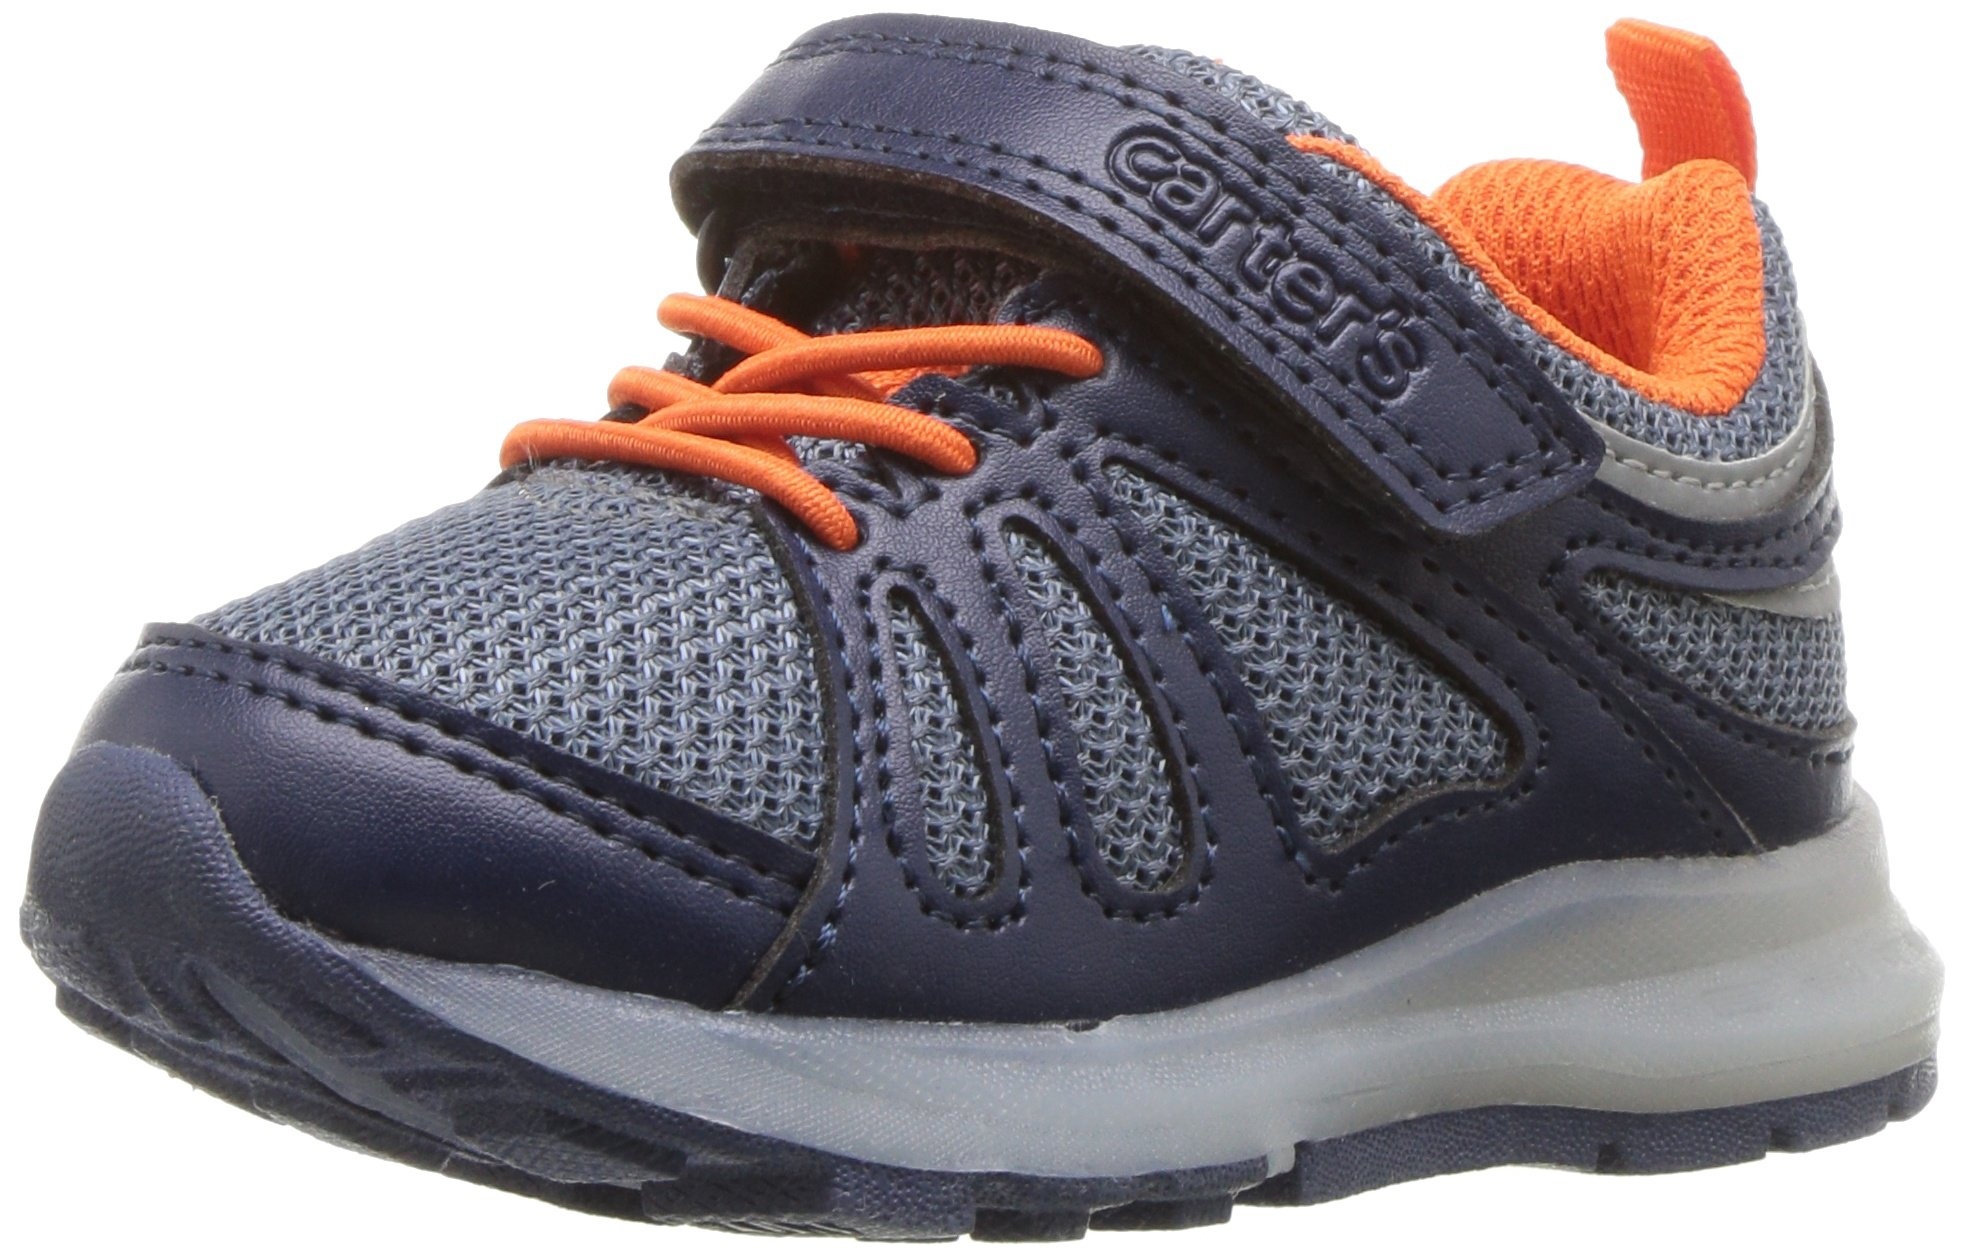 Carter's Baby Shelby Boy's and Girl's Light Sneaker, Navy, 10 M US Toddler